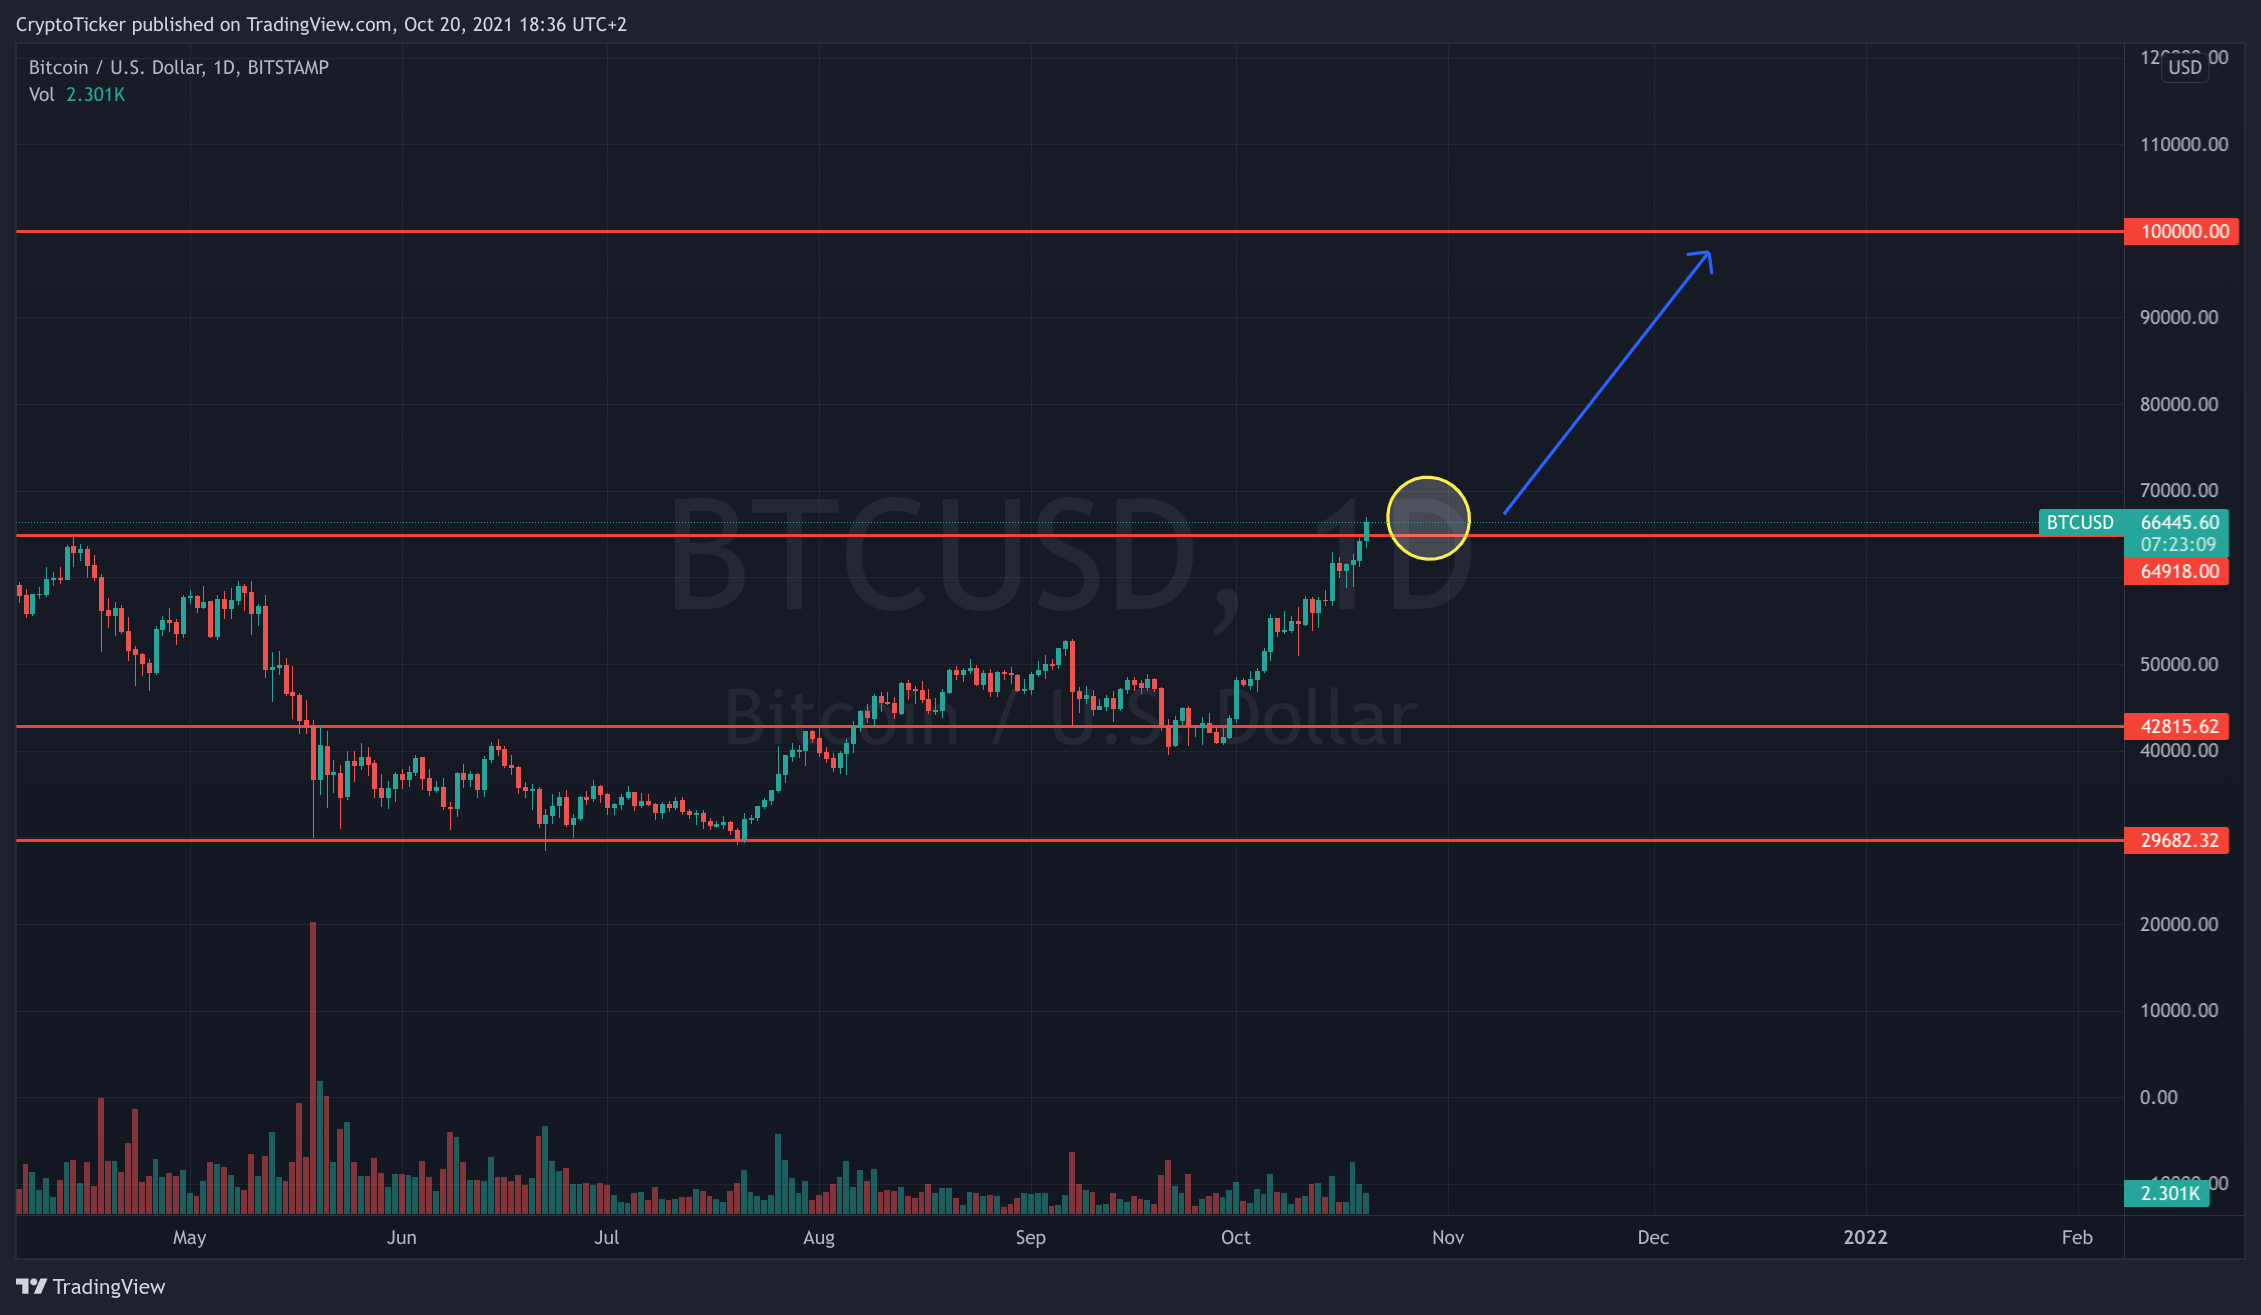 BTC/USD 1-day chart showing the next milestone for BTC